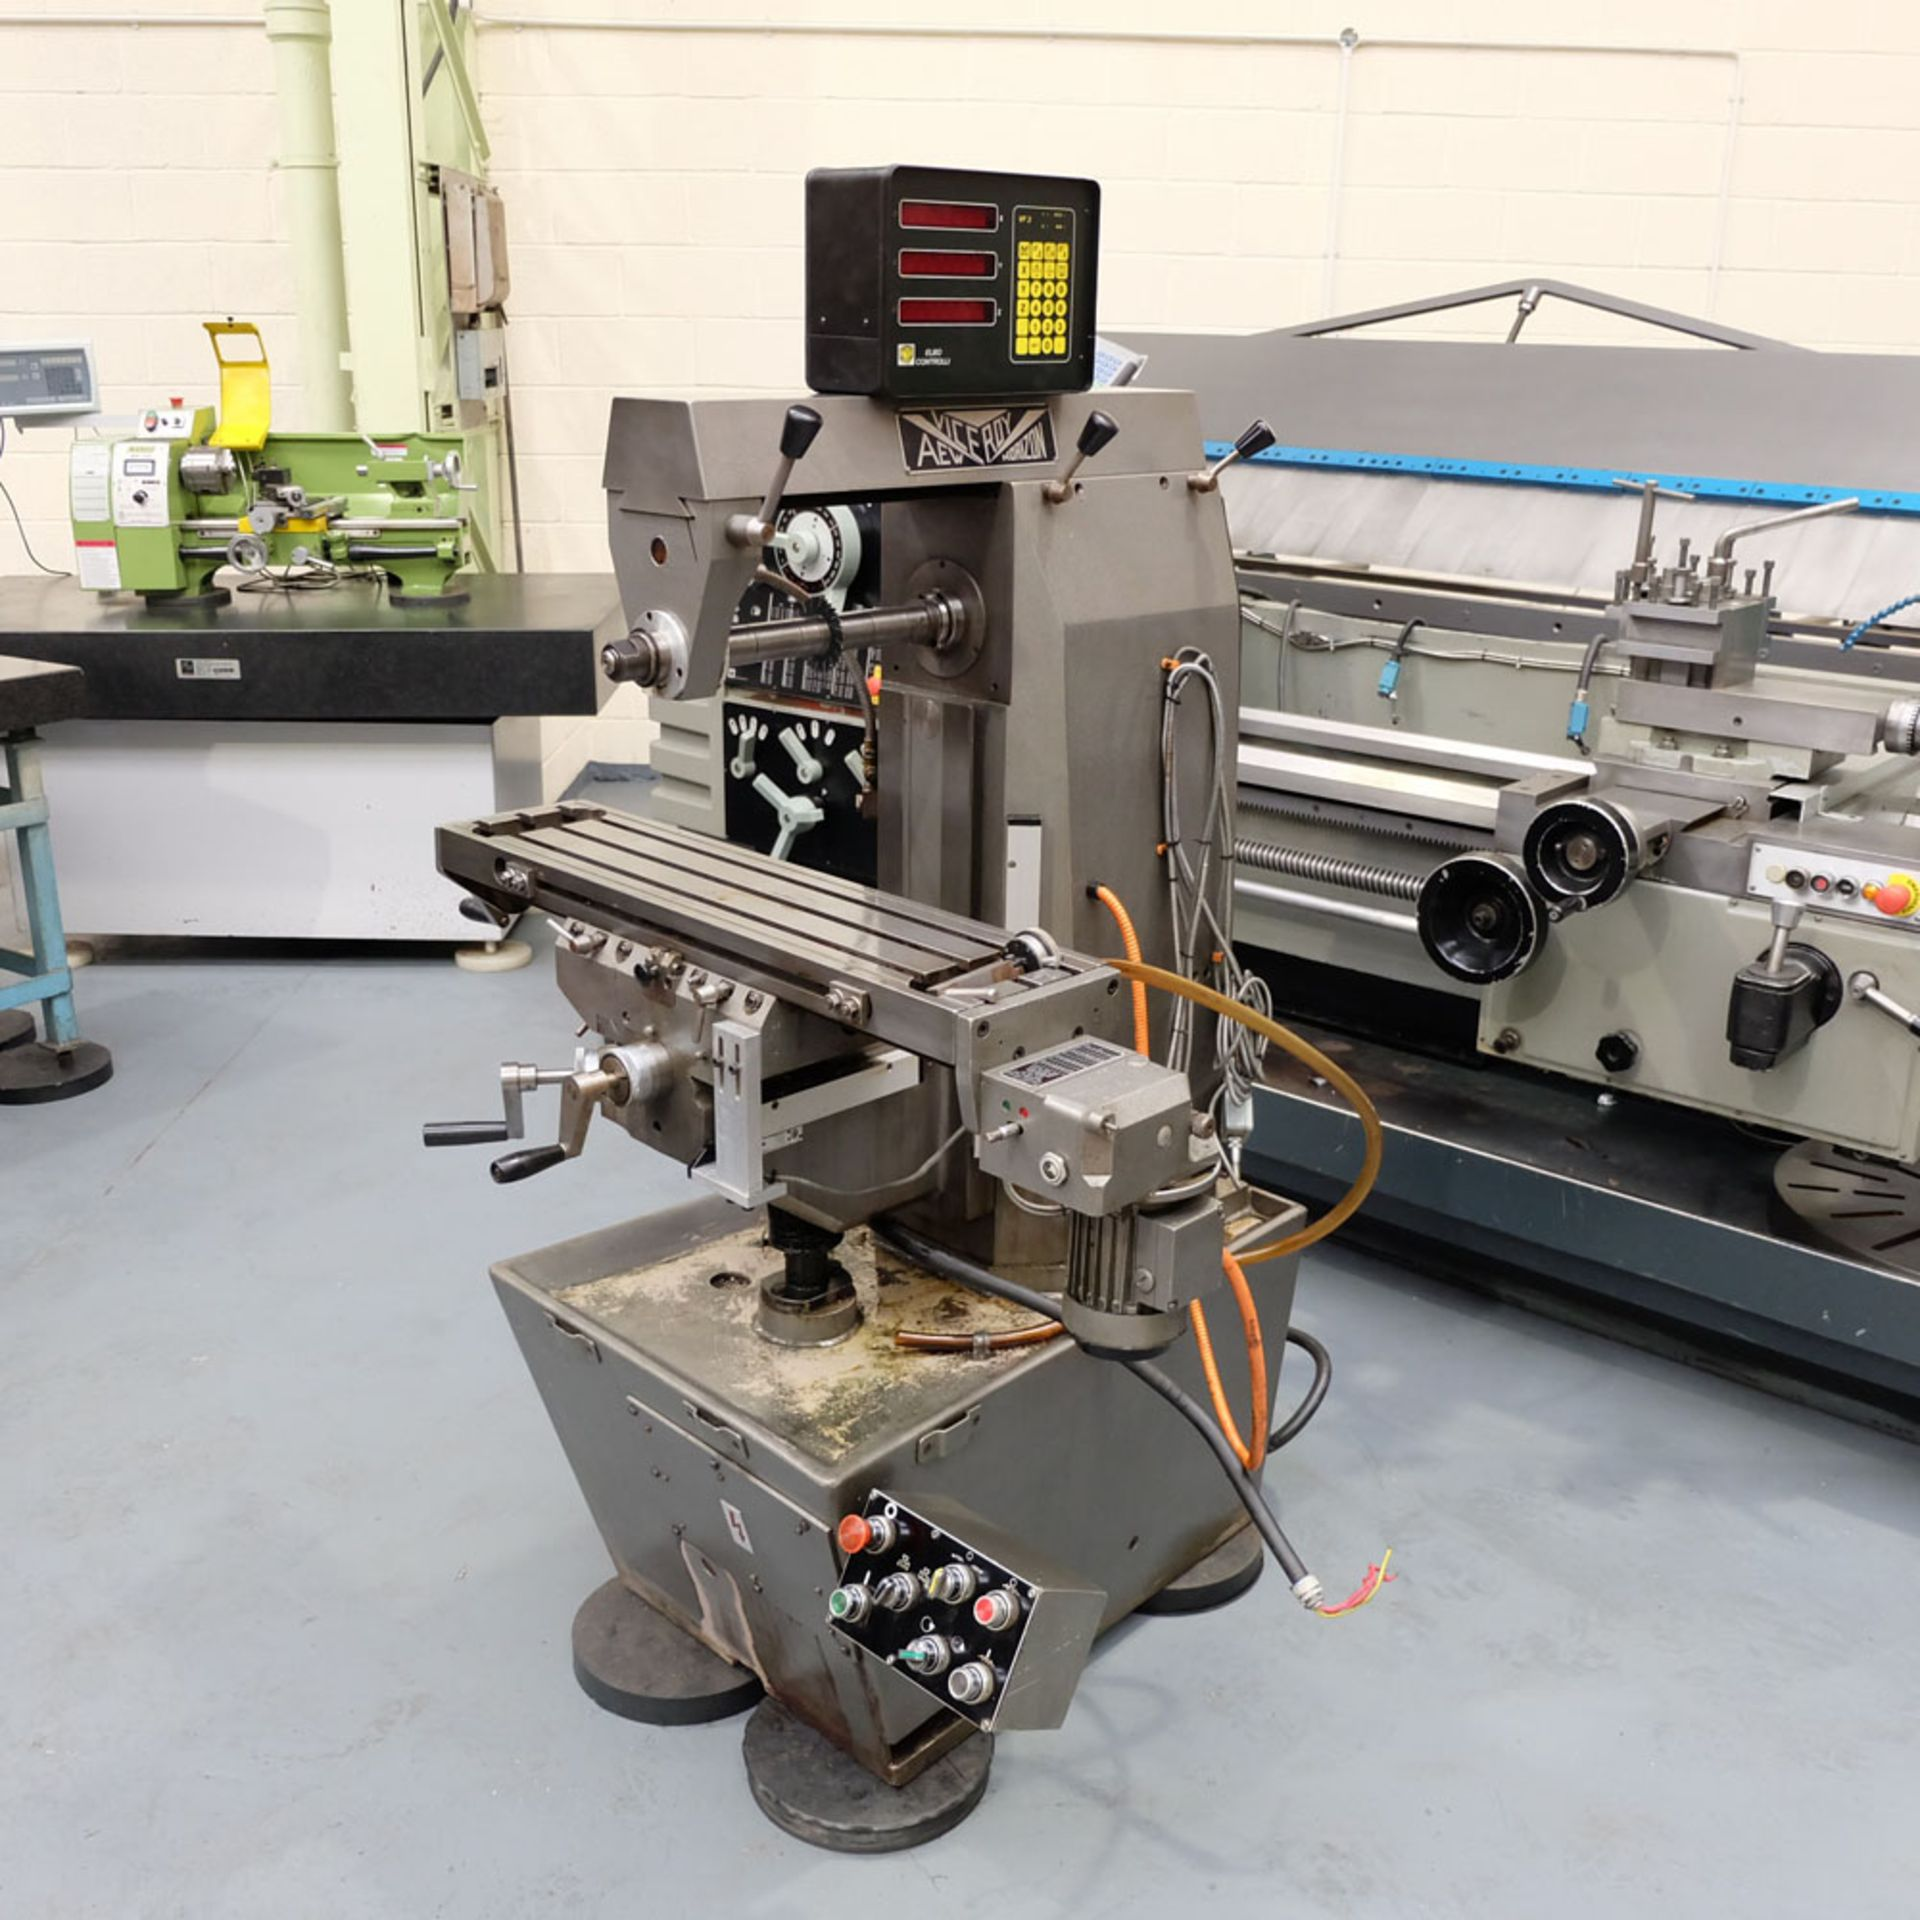 Viceroy Type AEW Horizon Horizontal Milling Machine. Taper 30 ISO. 2 Axis Digital Readout. - Image 2 of 10